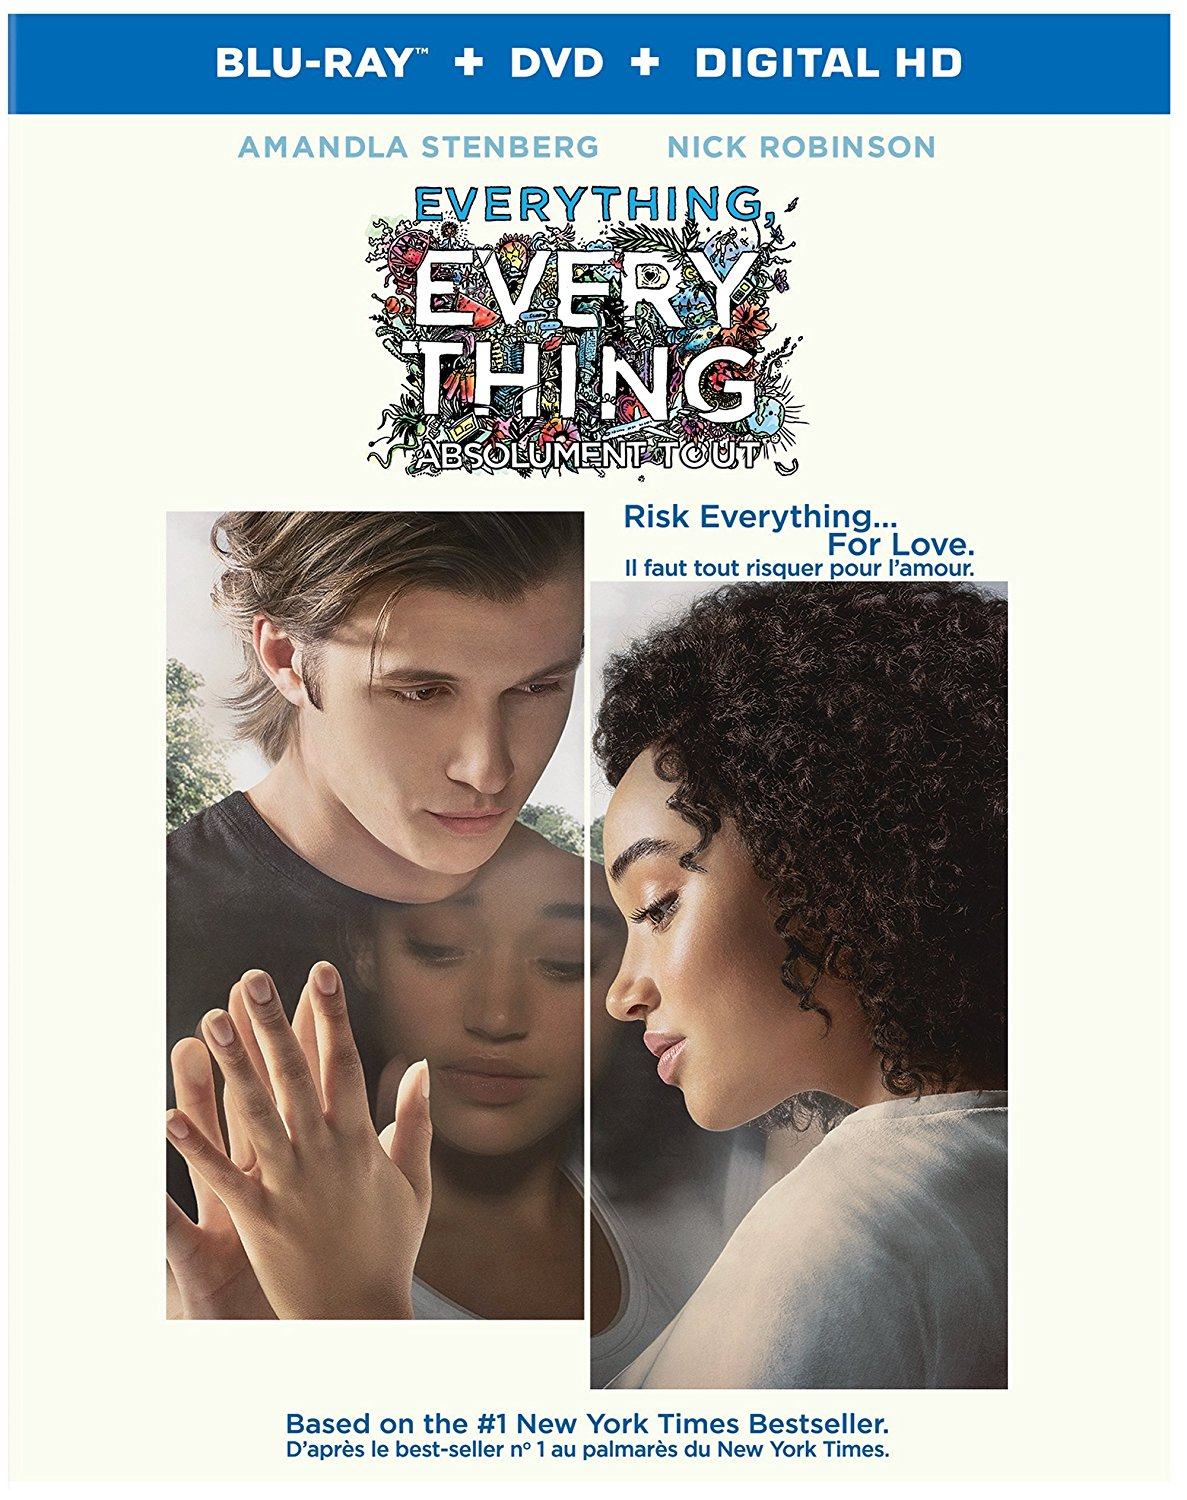 Blu-ray Review: Everything, Everything | One Movie, Our Views